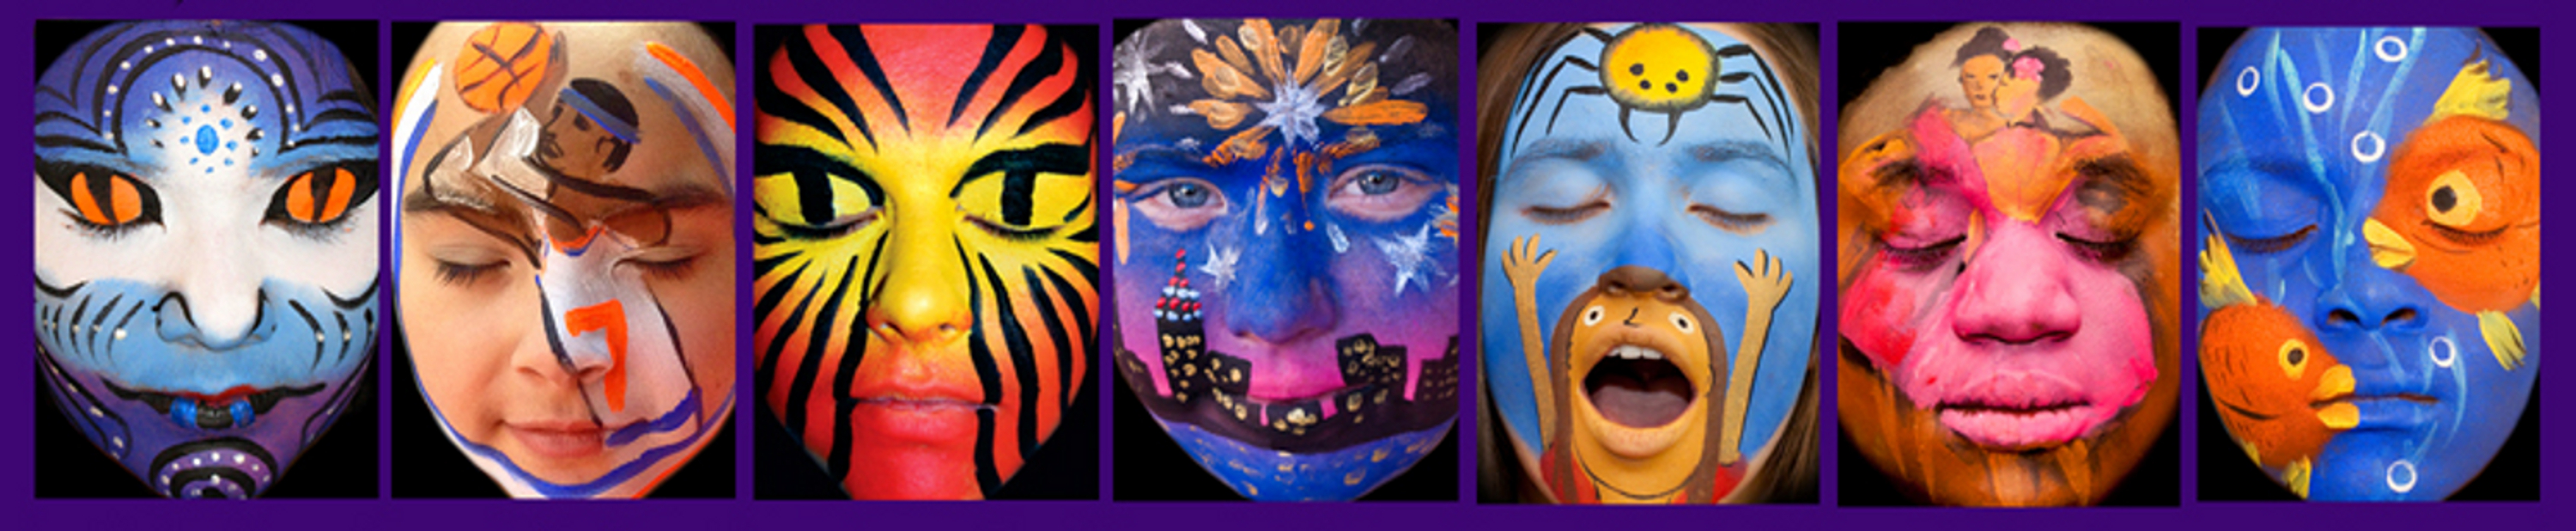 Face Painting Samples2